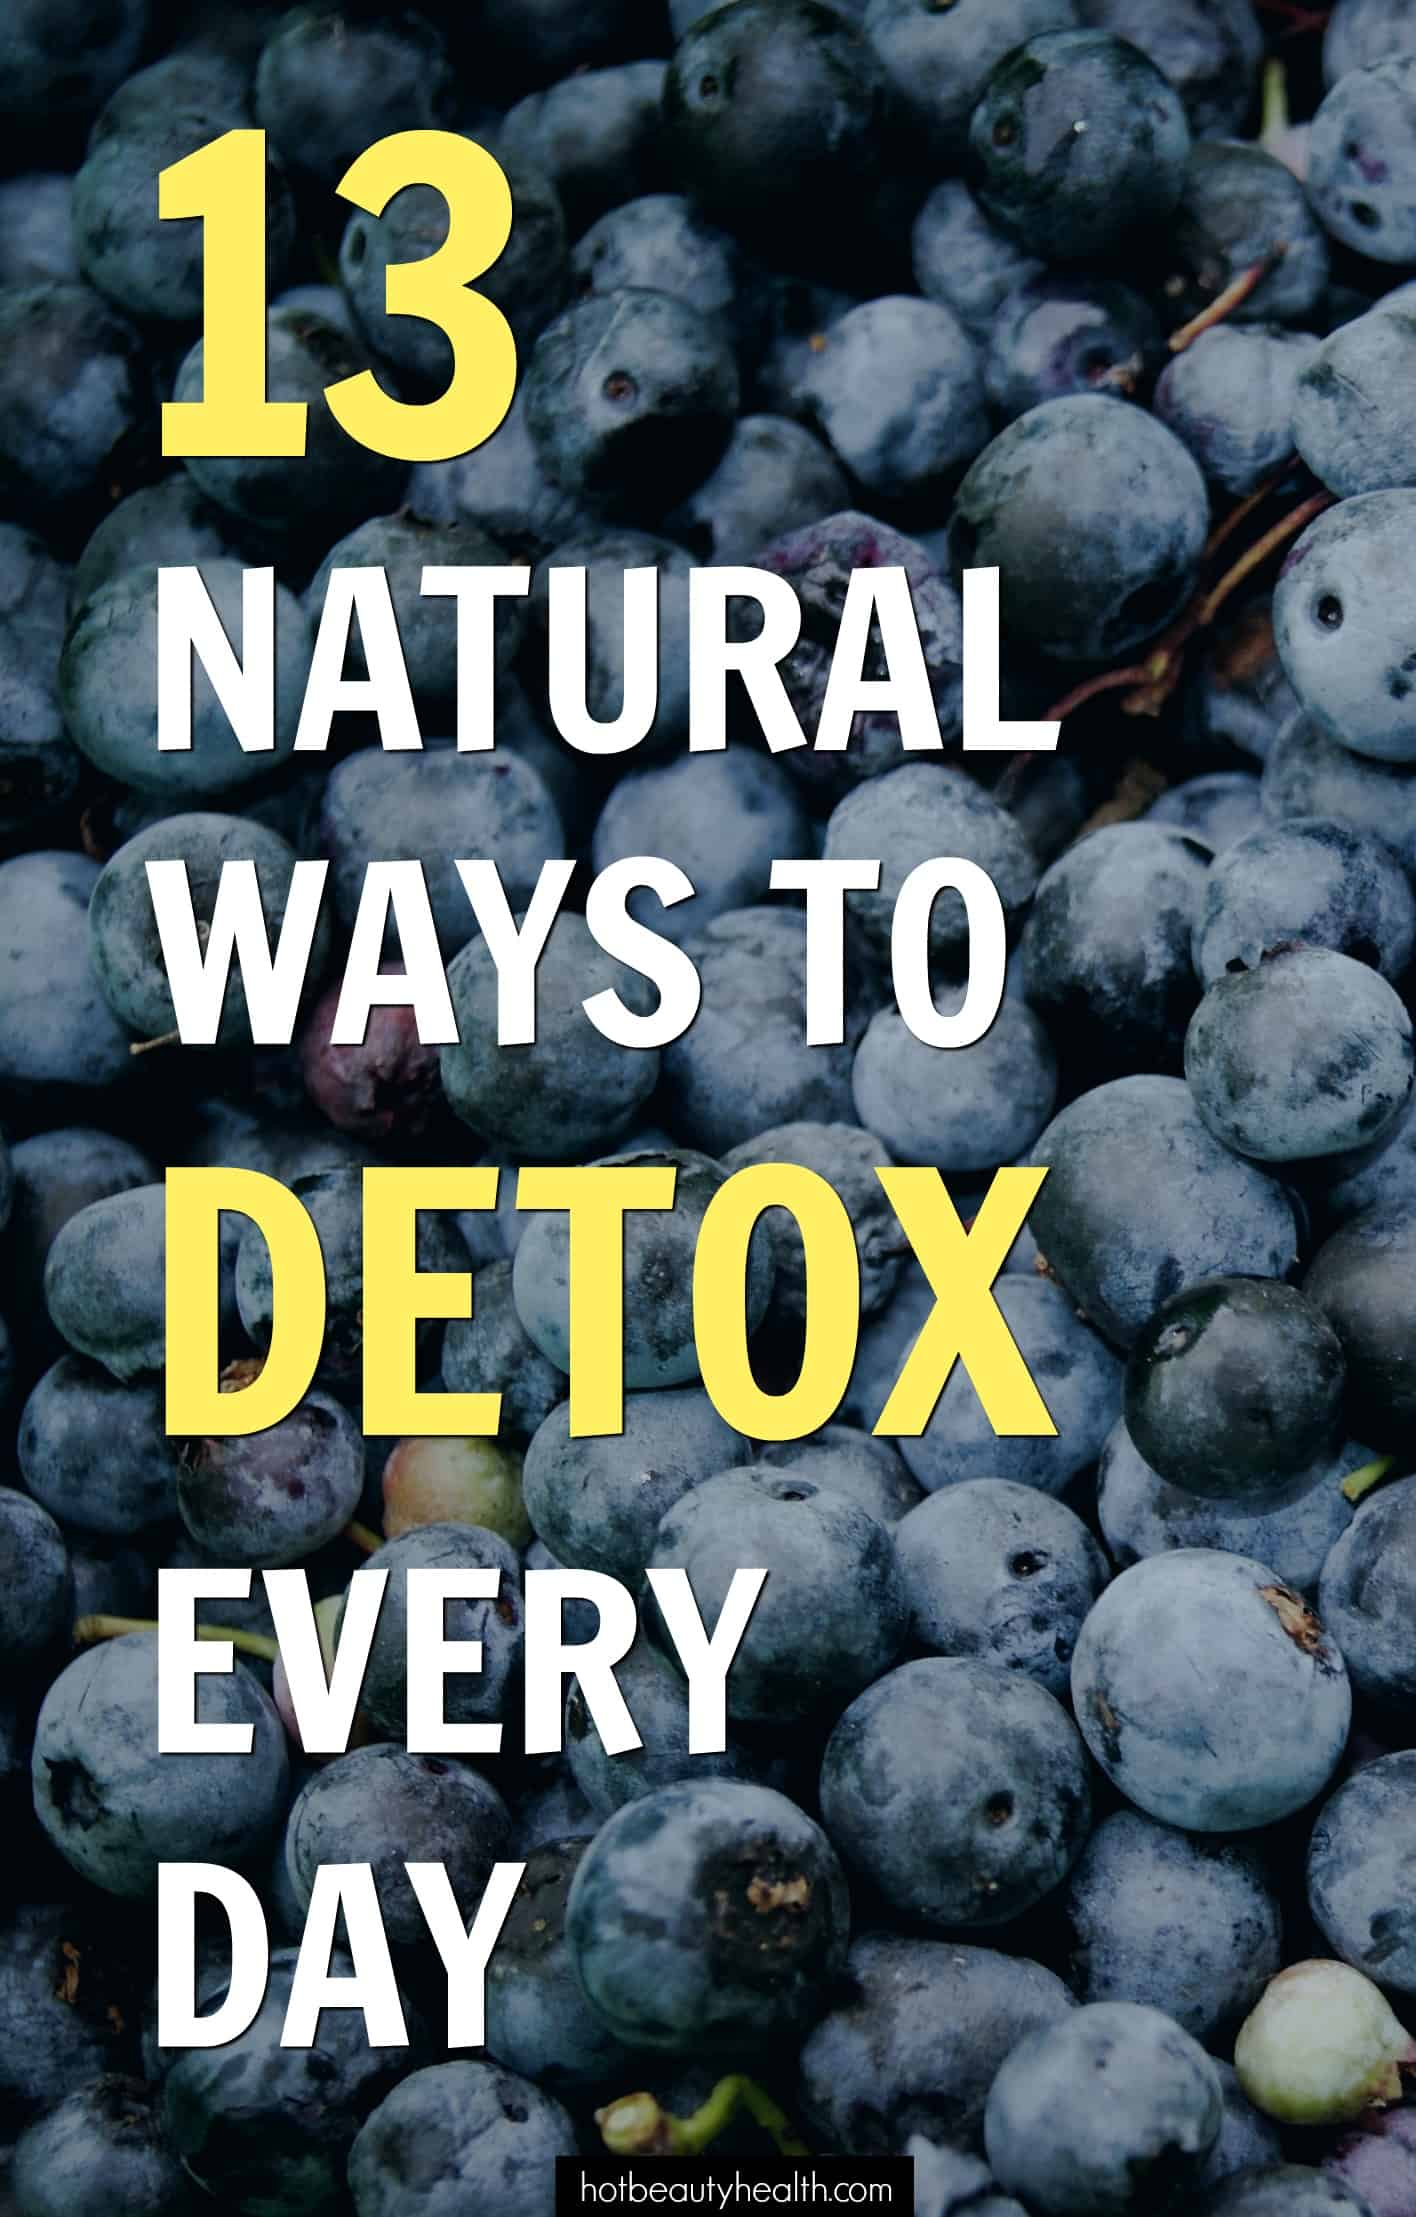 13 natural ways to detox your body every day! | Easy, healthy tips to improve your overall health and well being as well as as reach your weight loss and fitness goals.